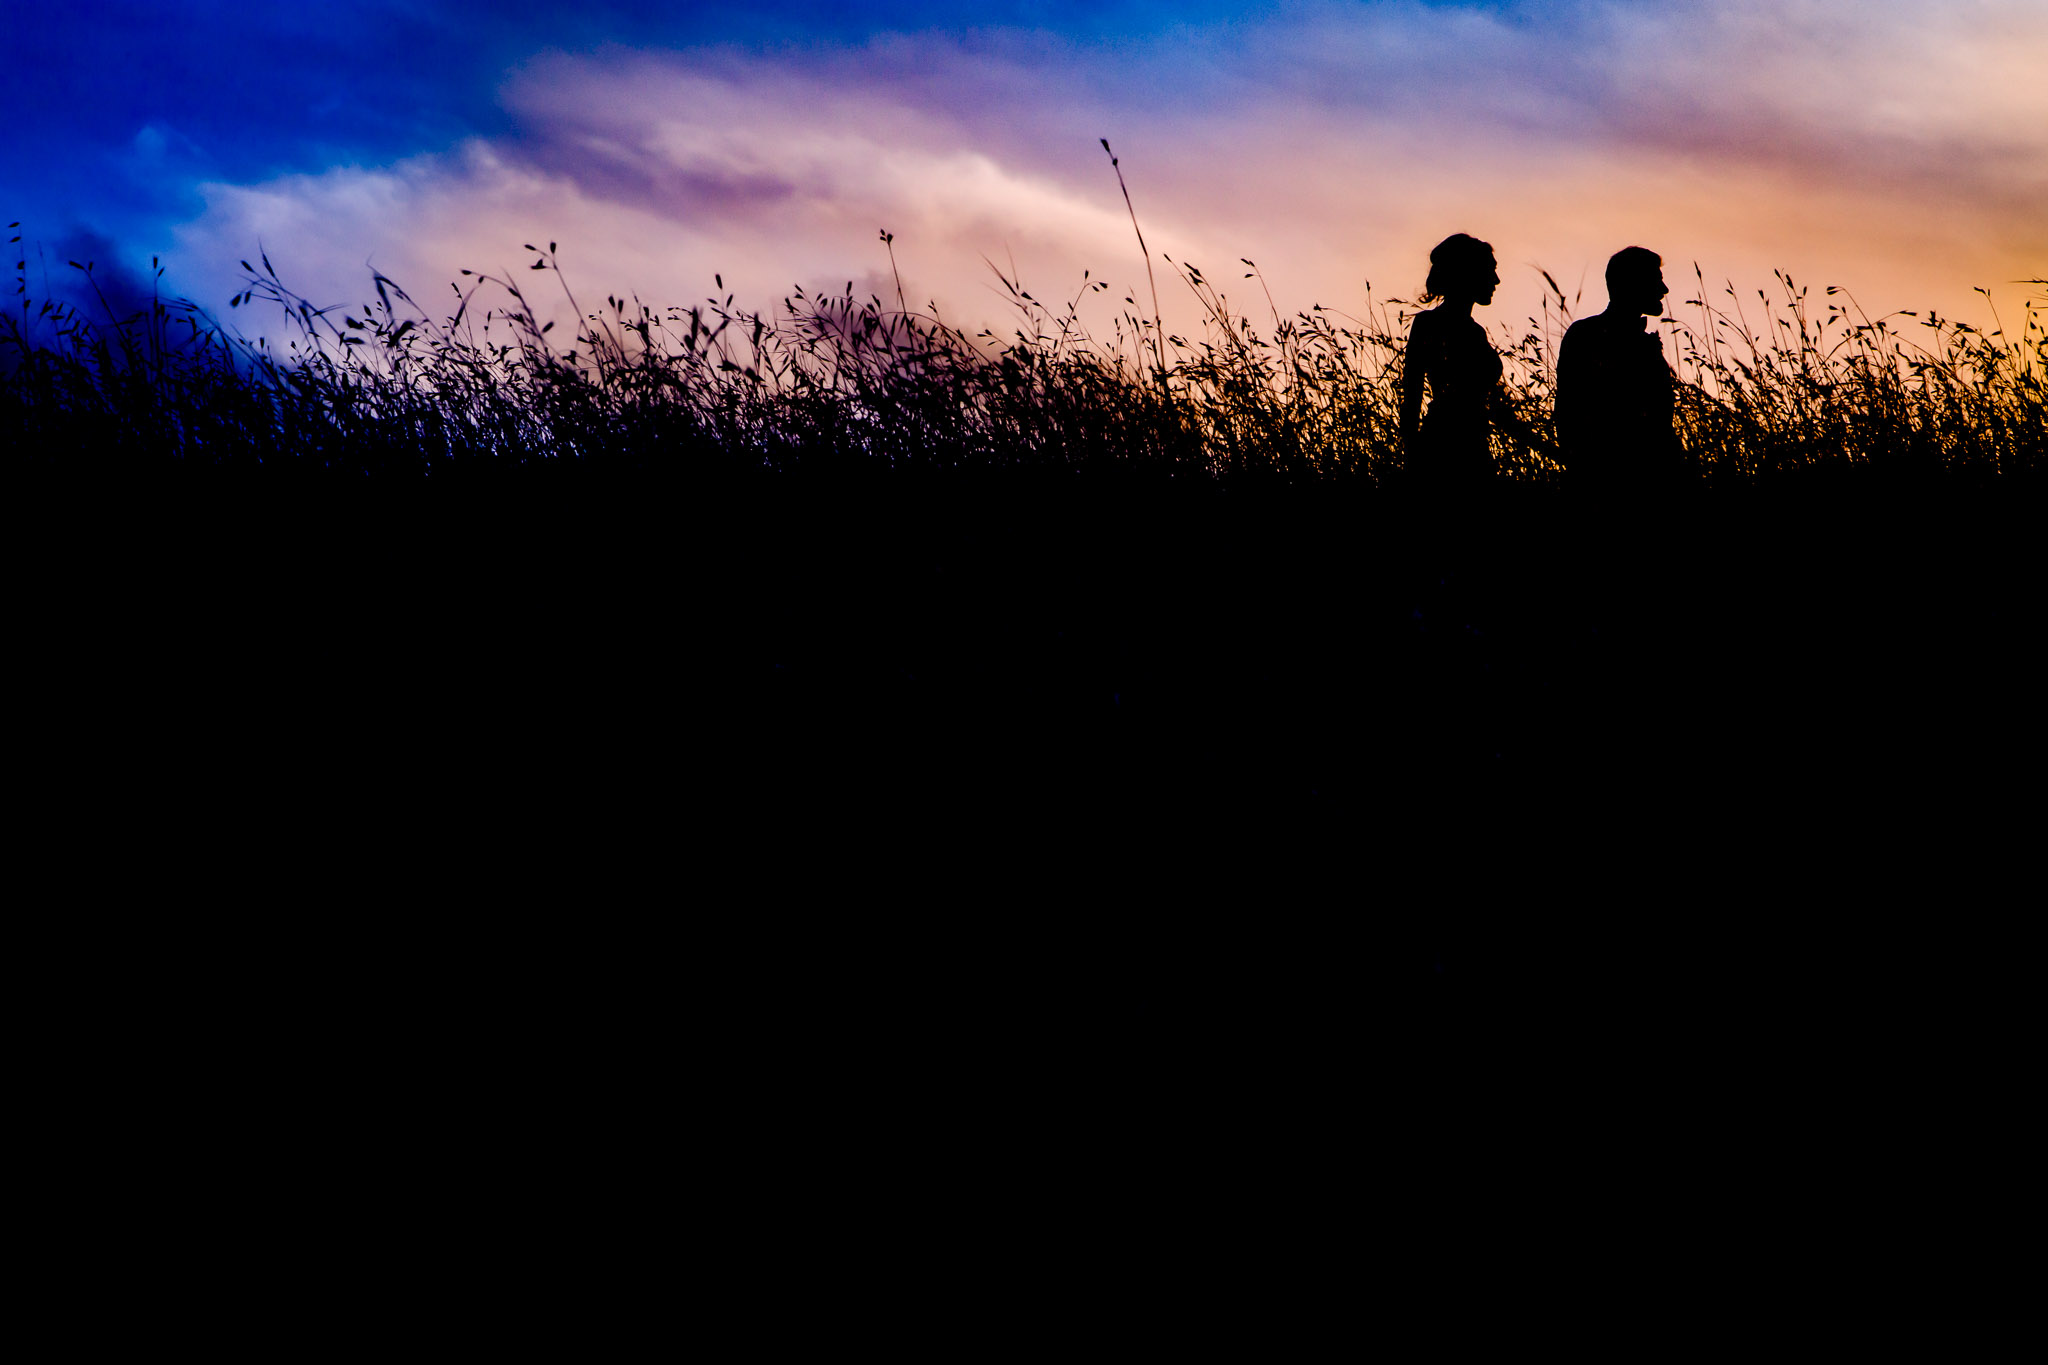 Bride and Groom walking at sunset gorgeous silhouette